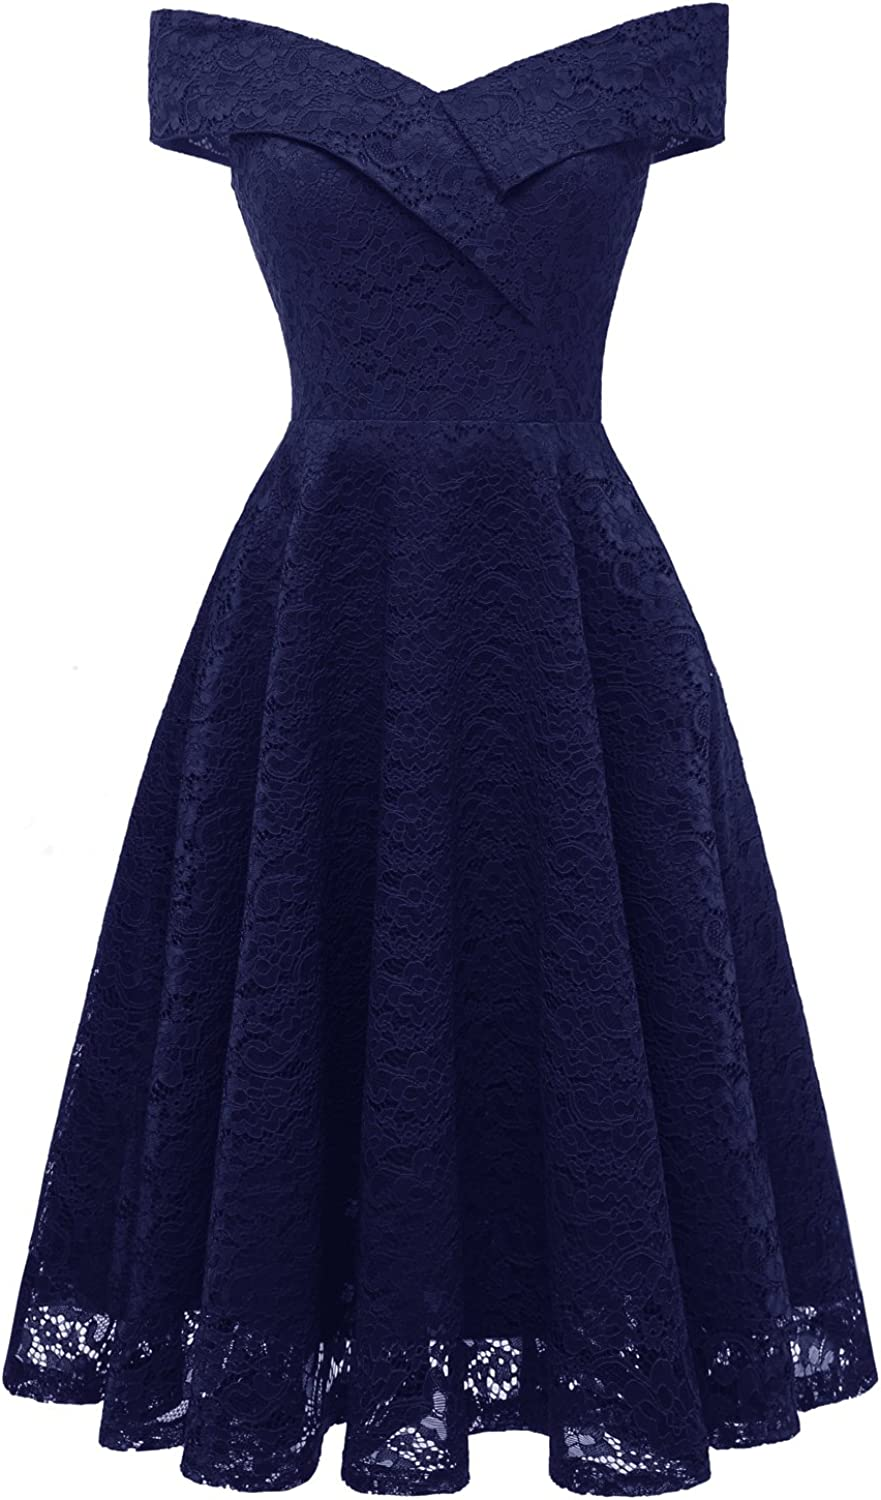 Women's One-Shoulder lace At the price of surprise Dress Brid Party NEW before selling ☆ Flare Patchwork